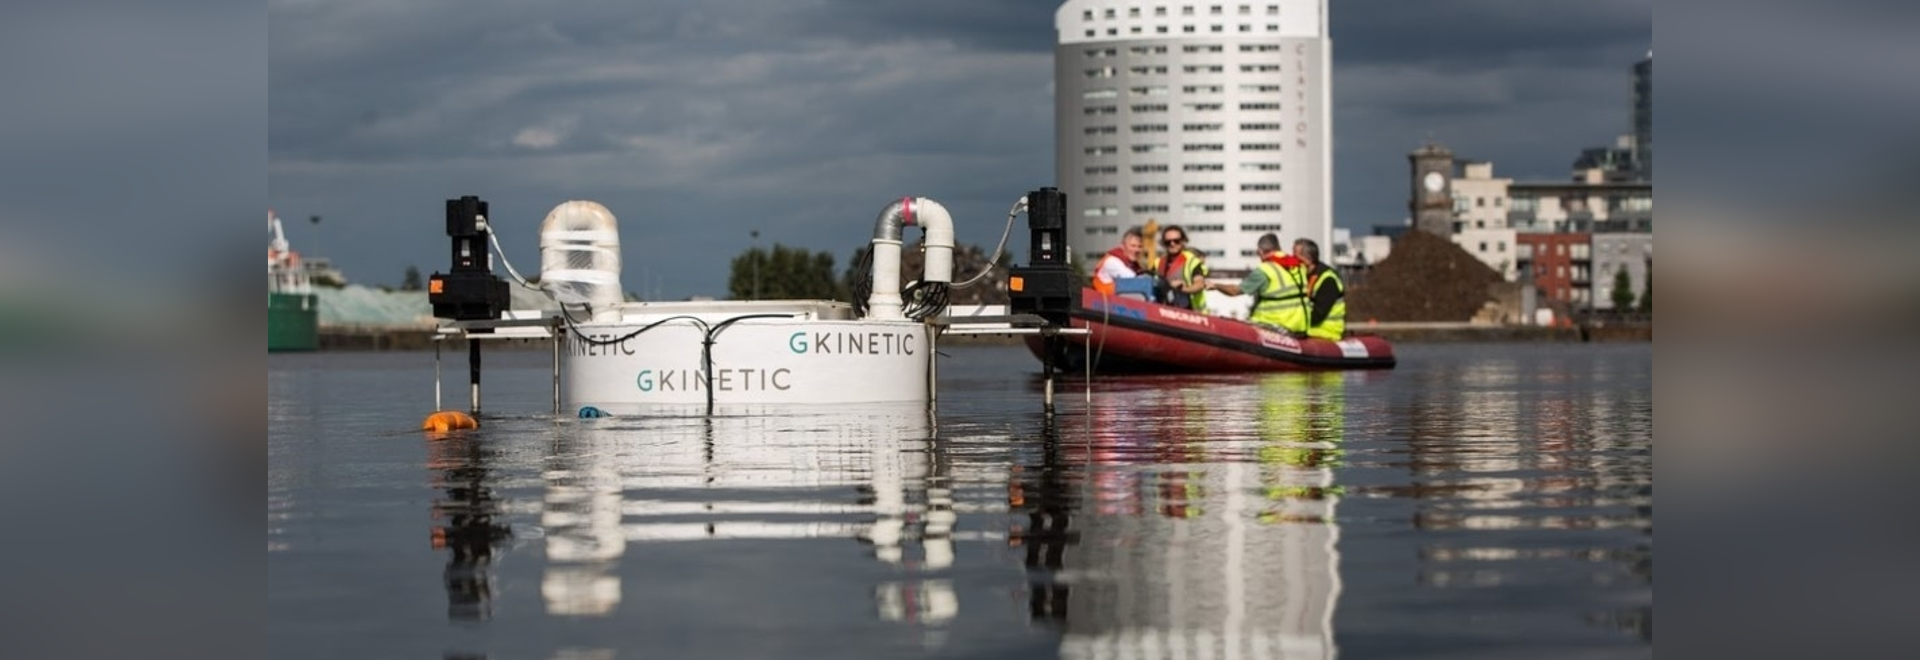 The testing of GKinetic's scaled device in Limerick Docks